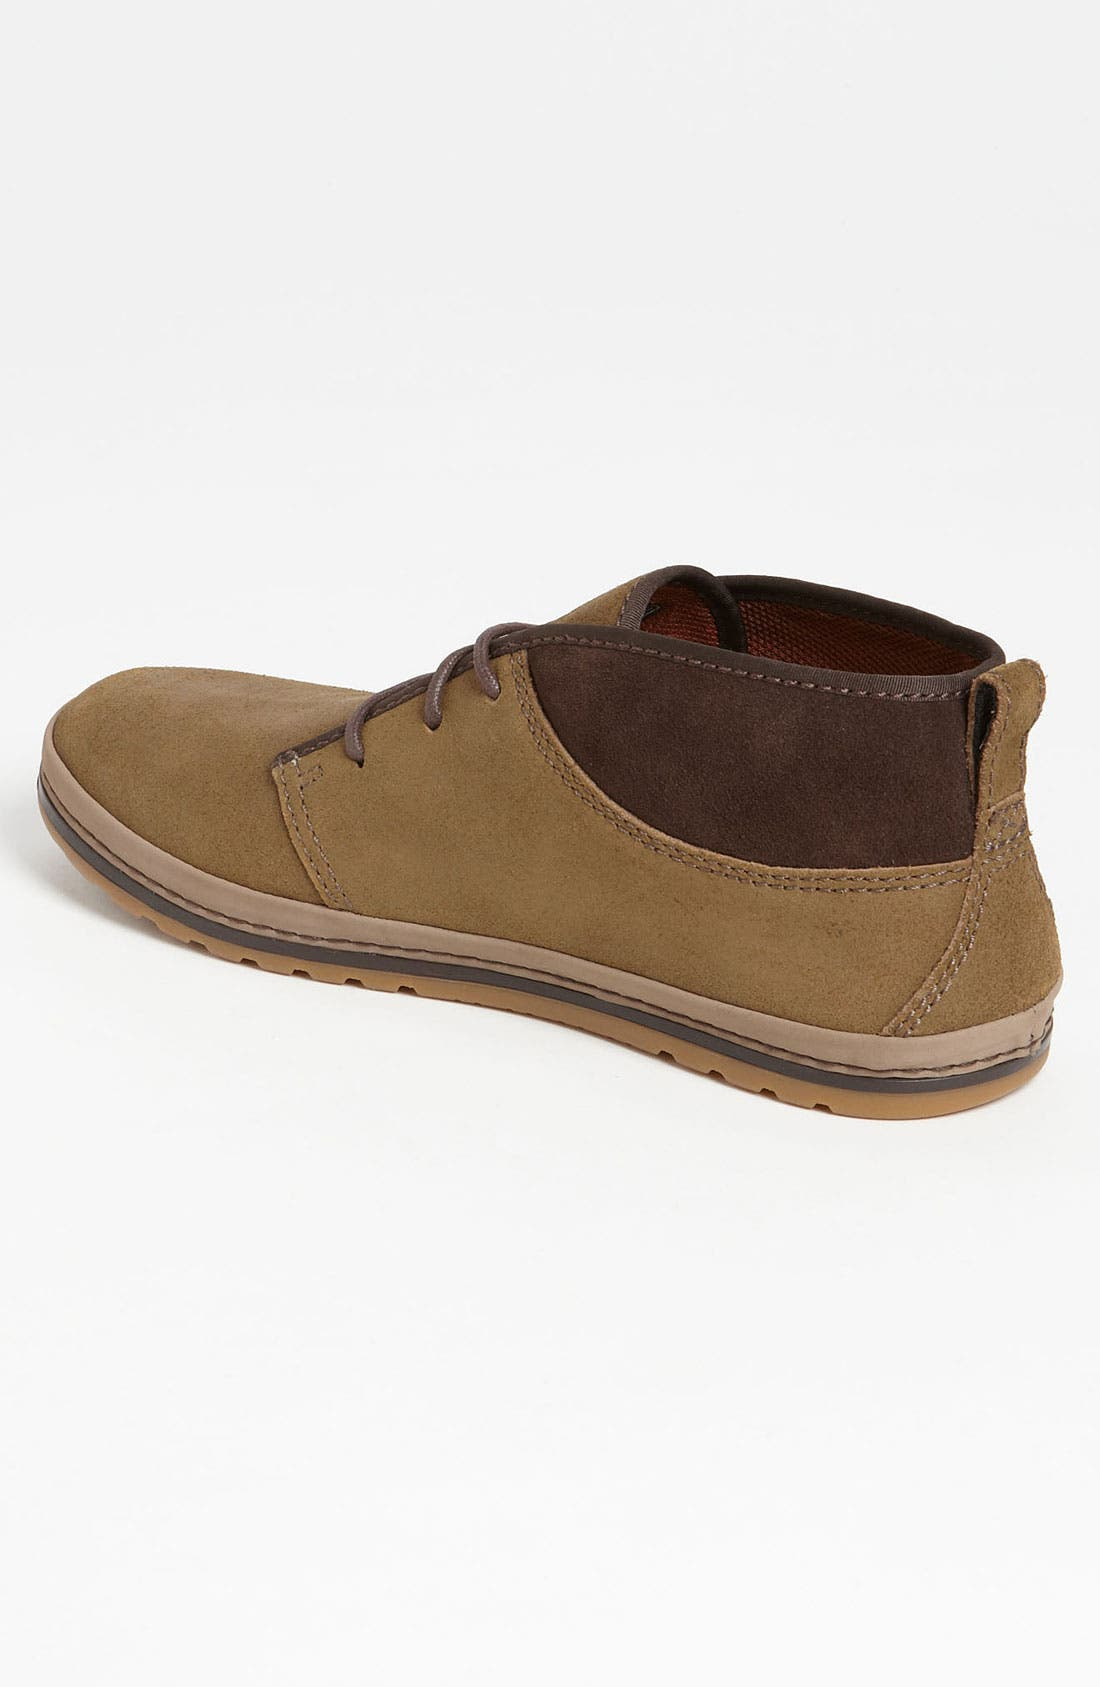 Alternate Image 2  - Teva 'Cedar Canyon' Chukka Boot (Online Only)